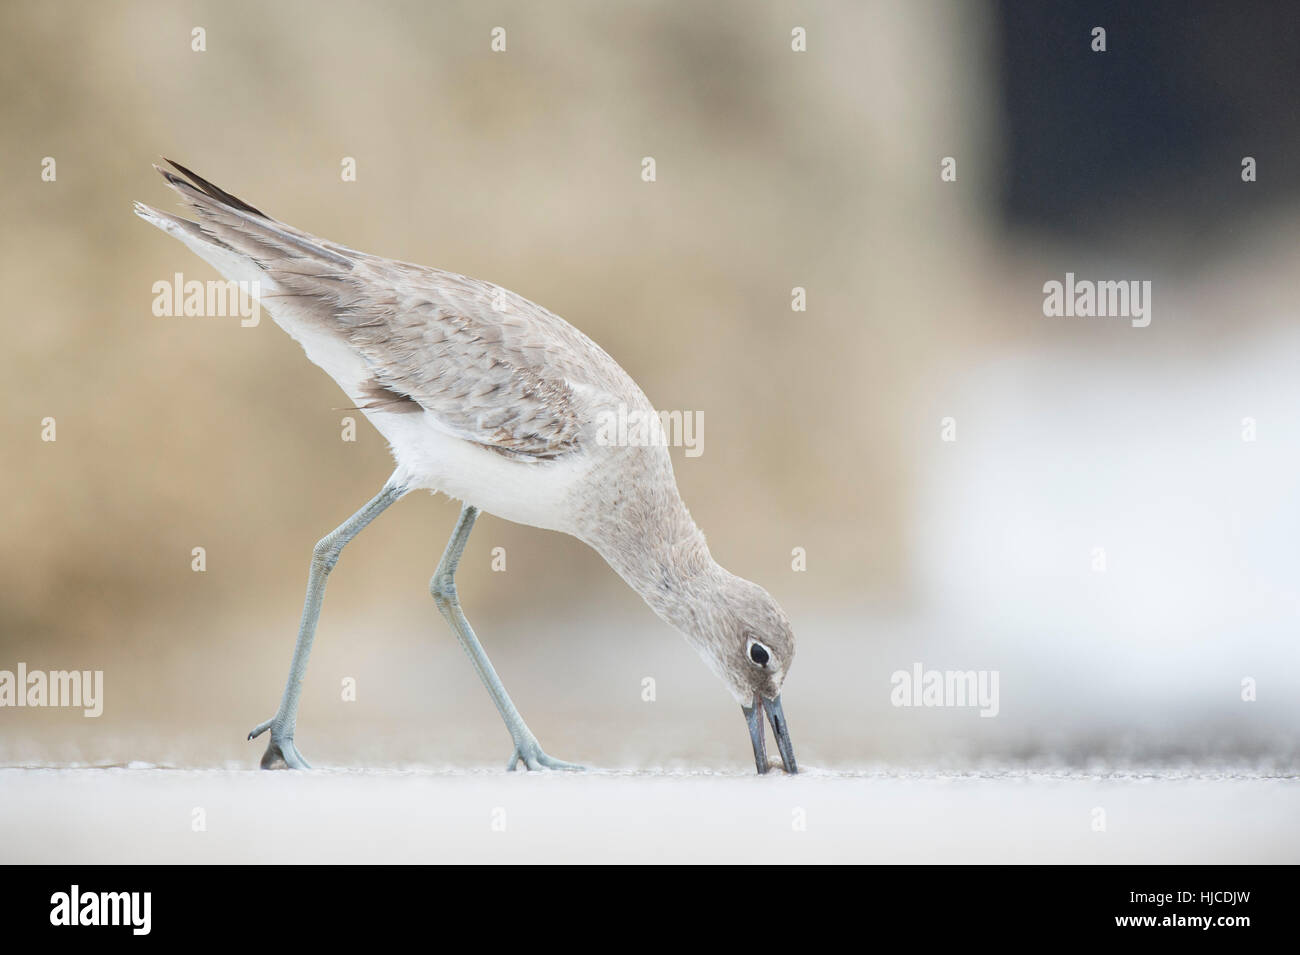 A Willet is feeding with its beak in the sand on the beach under overcast light. - Stock Image